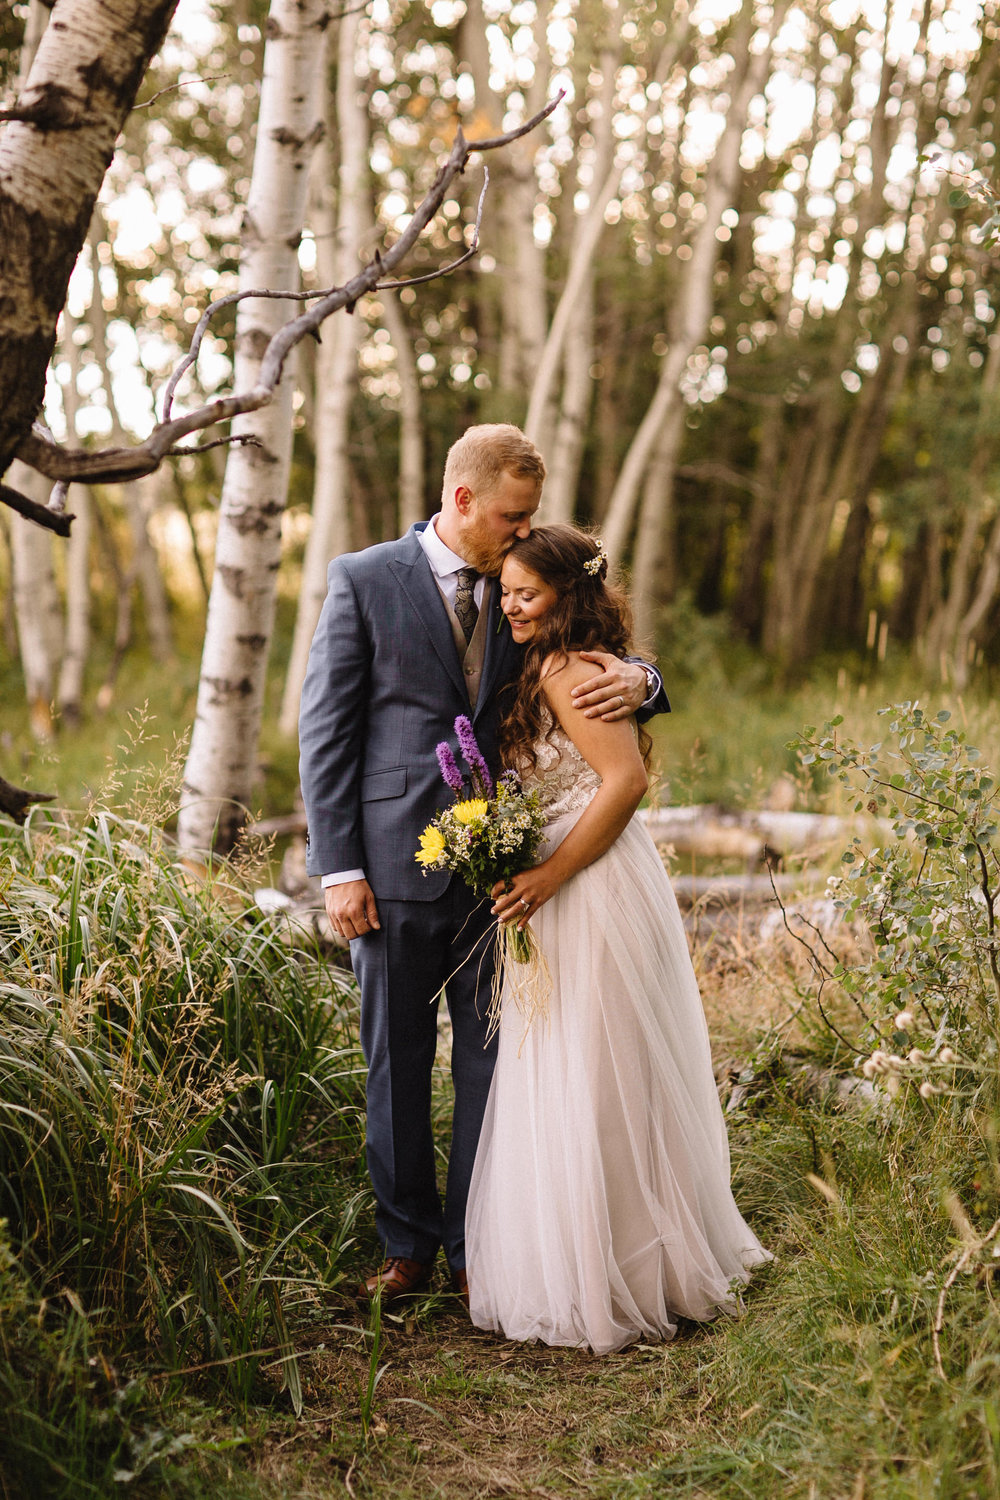 Liz Osban Photography Vedauwoo Buford Wyoming Happy Jack Wedding Elopement Destination Small Forest Cheyenne Laramie Medicine Bow National Forest Portraits Sarah Taylor2.jpg